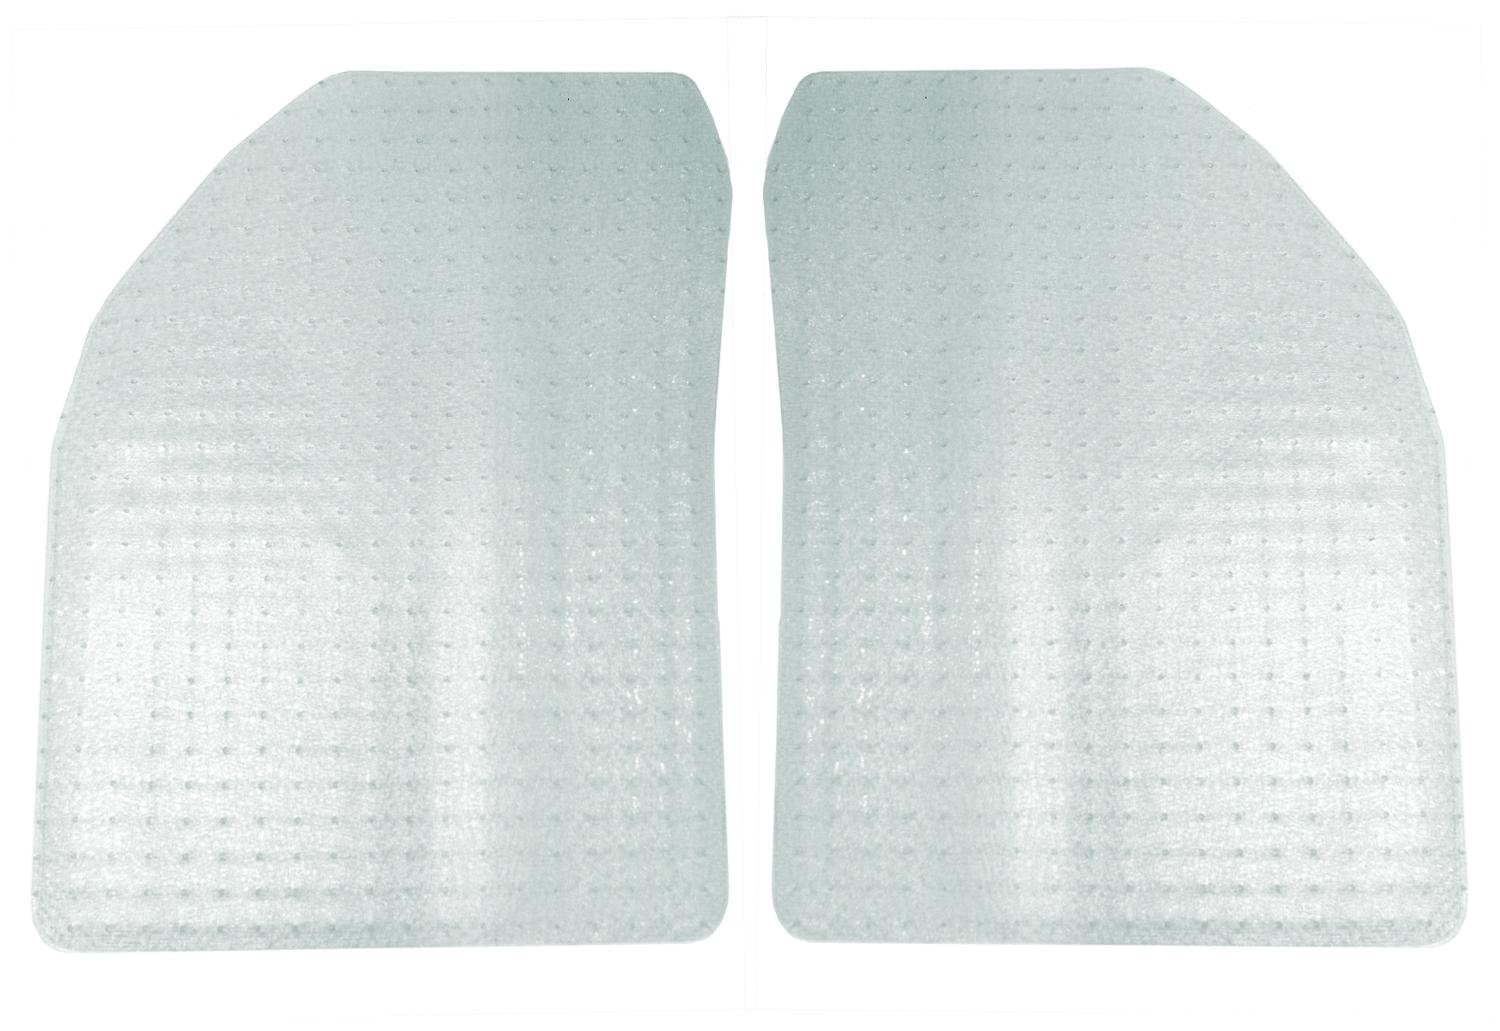 Coverking Front Custom Fit Floor Mats for Select Chrysler Sebring Models CFMA5FCR9368 Clear Nibbed Vinyl